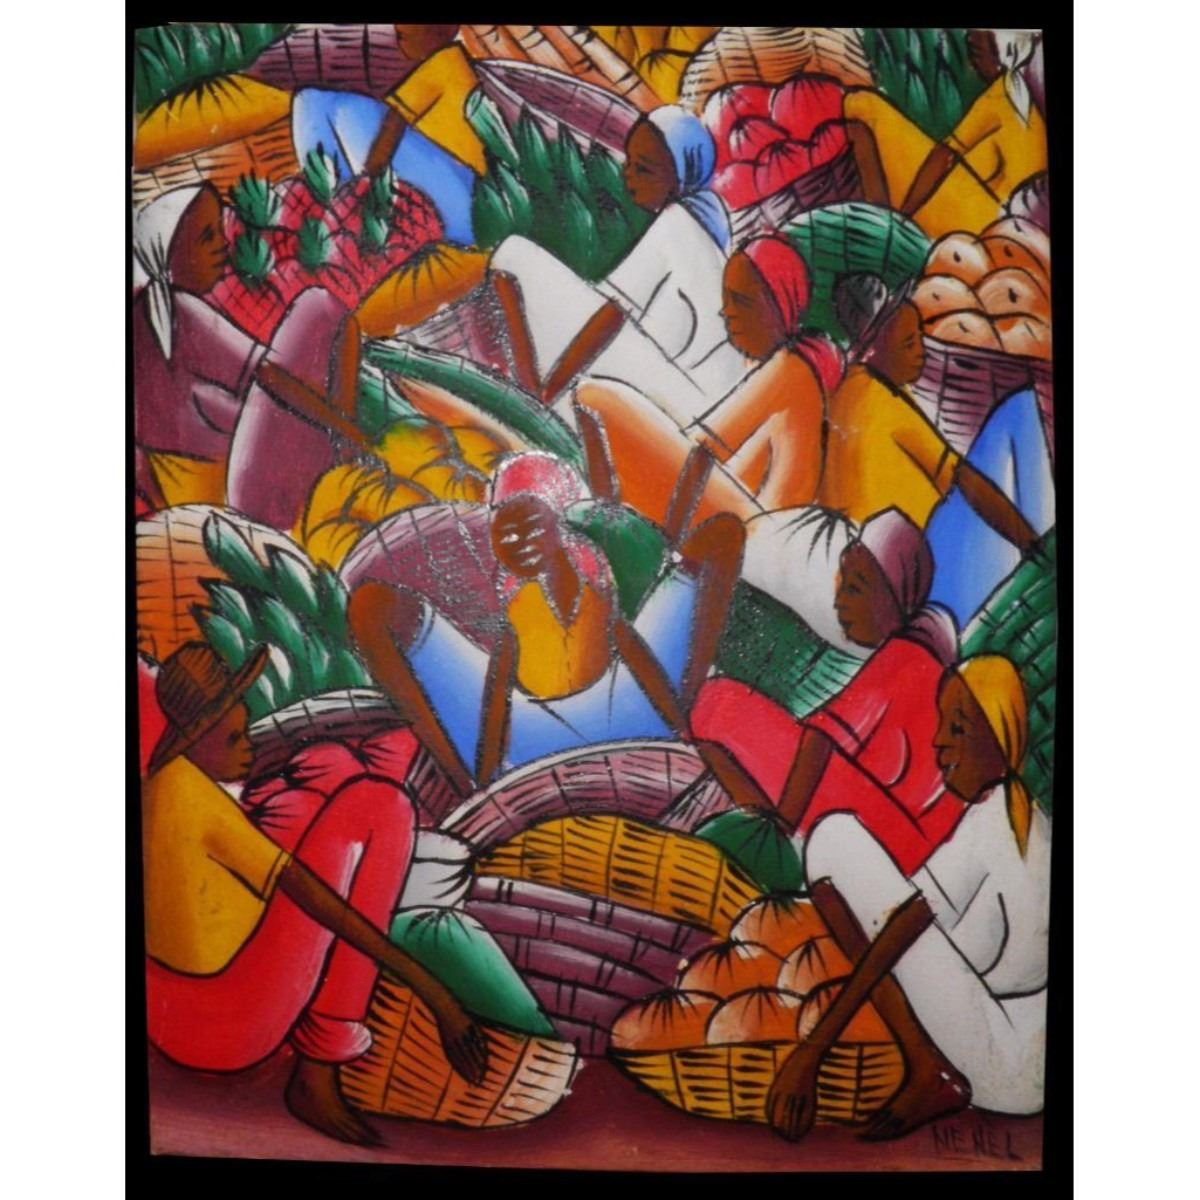 At Wednesday Farmers Market I Signed >> Signed Acrylic Painting Haitian Farmers Market Ready To Frame